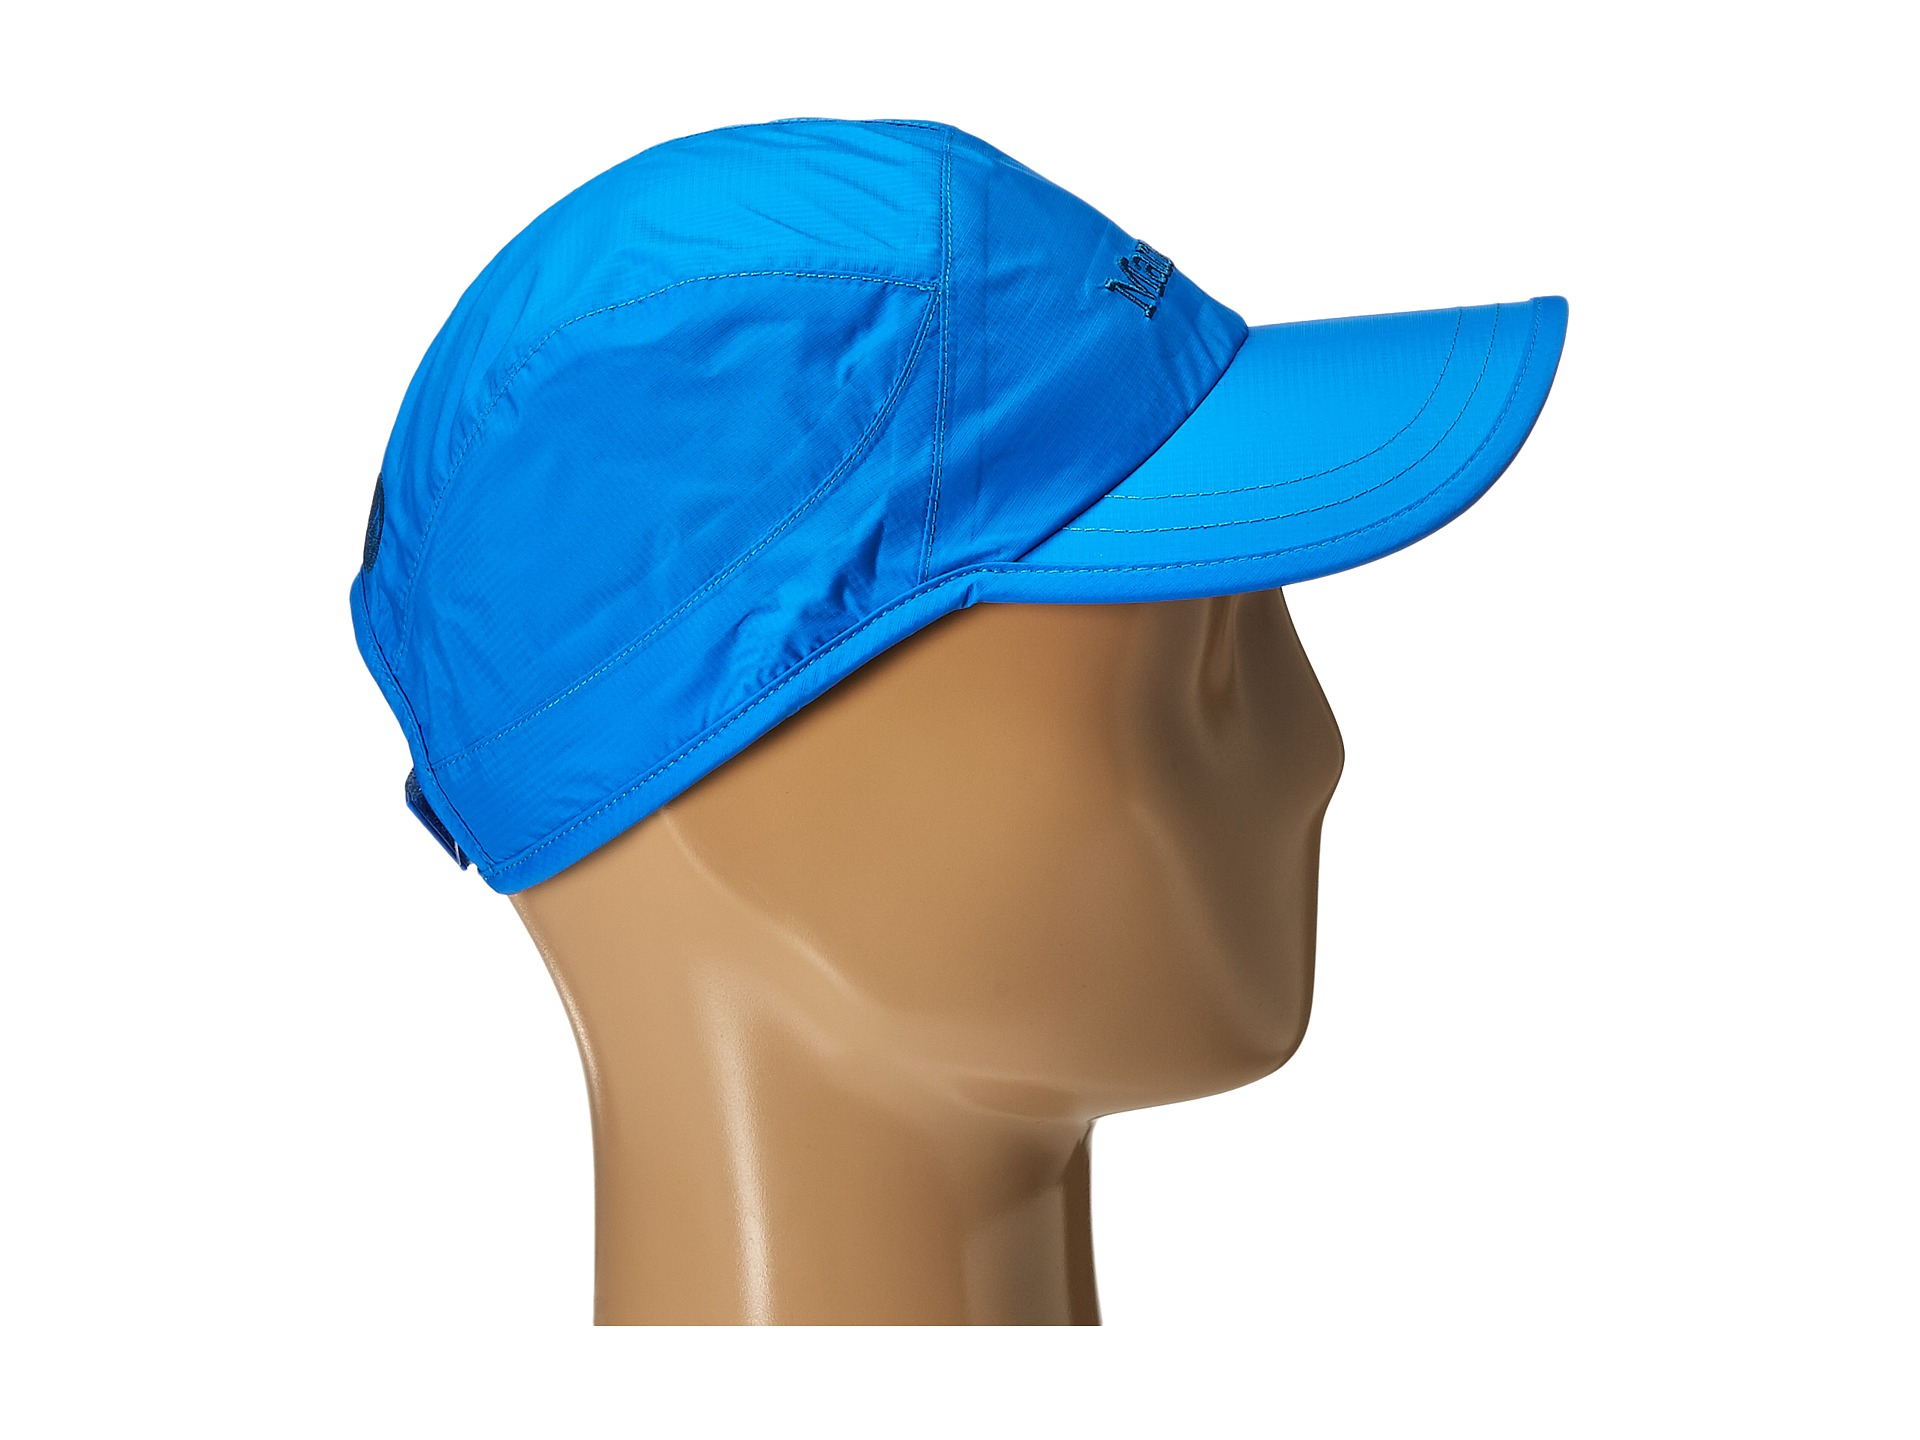 Lyst - Marmot Precip Baseball Cap in Blue for Men b40ed3a13413